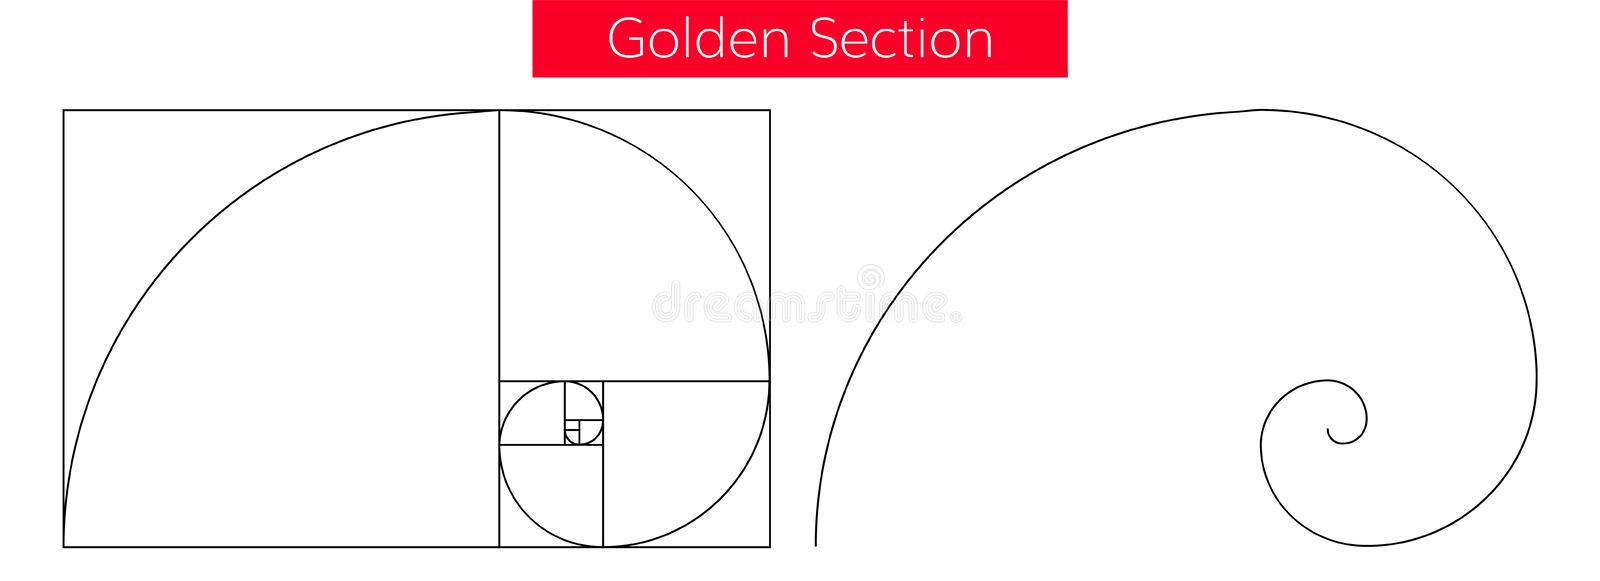 Golden section vector royalty free illustration